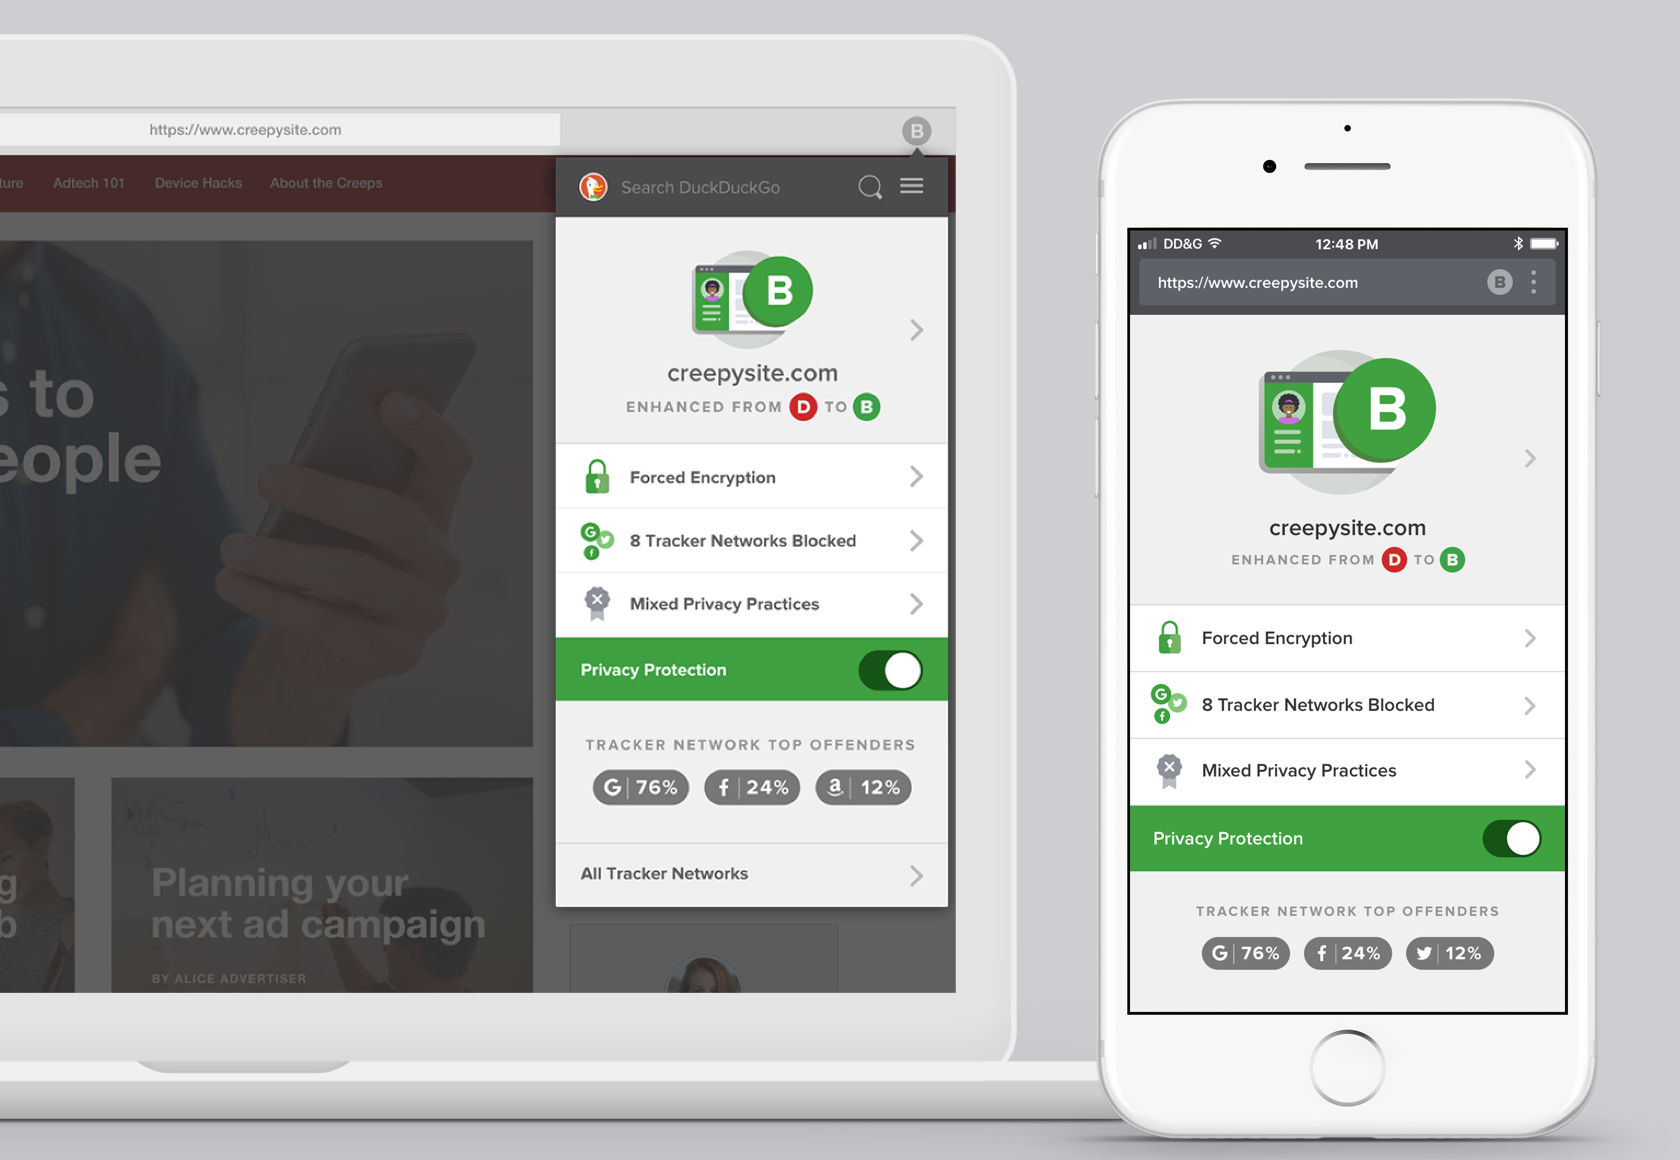 DuckDuckGo's New Privacy Tools Help Keep You Safe Around the Web 13